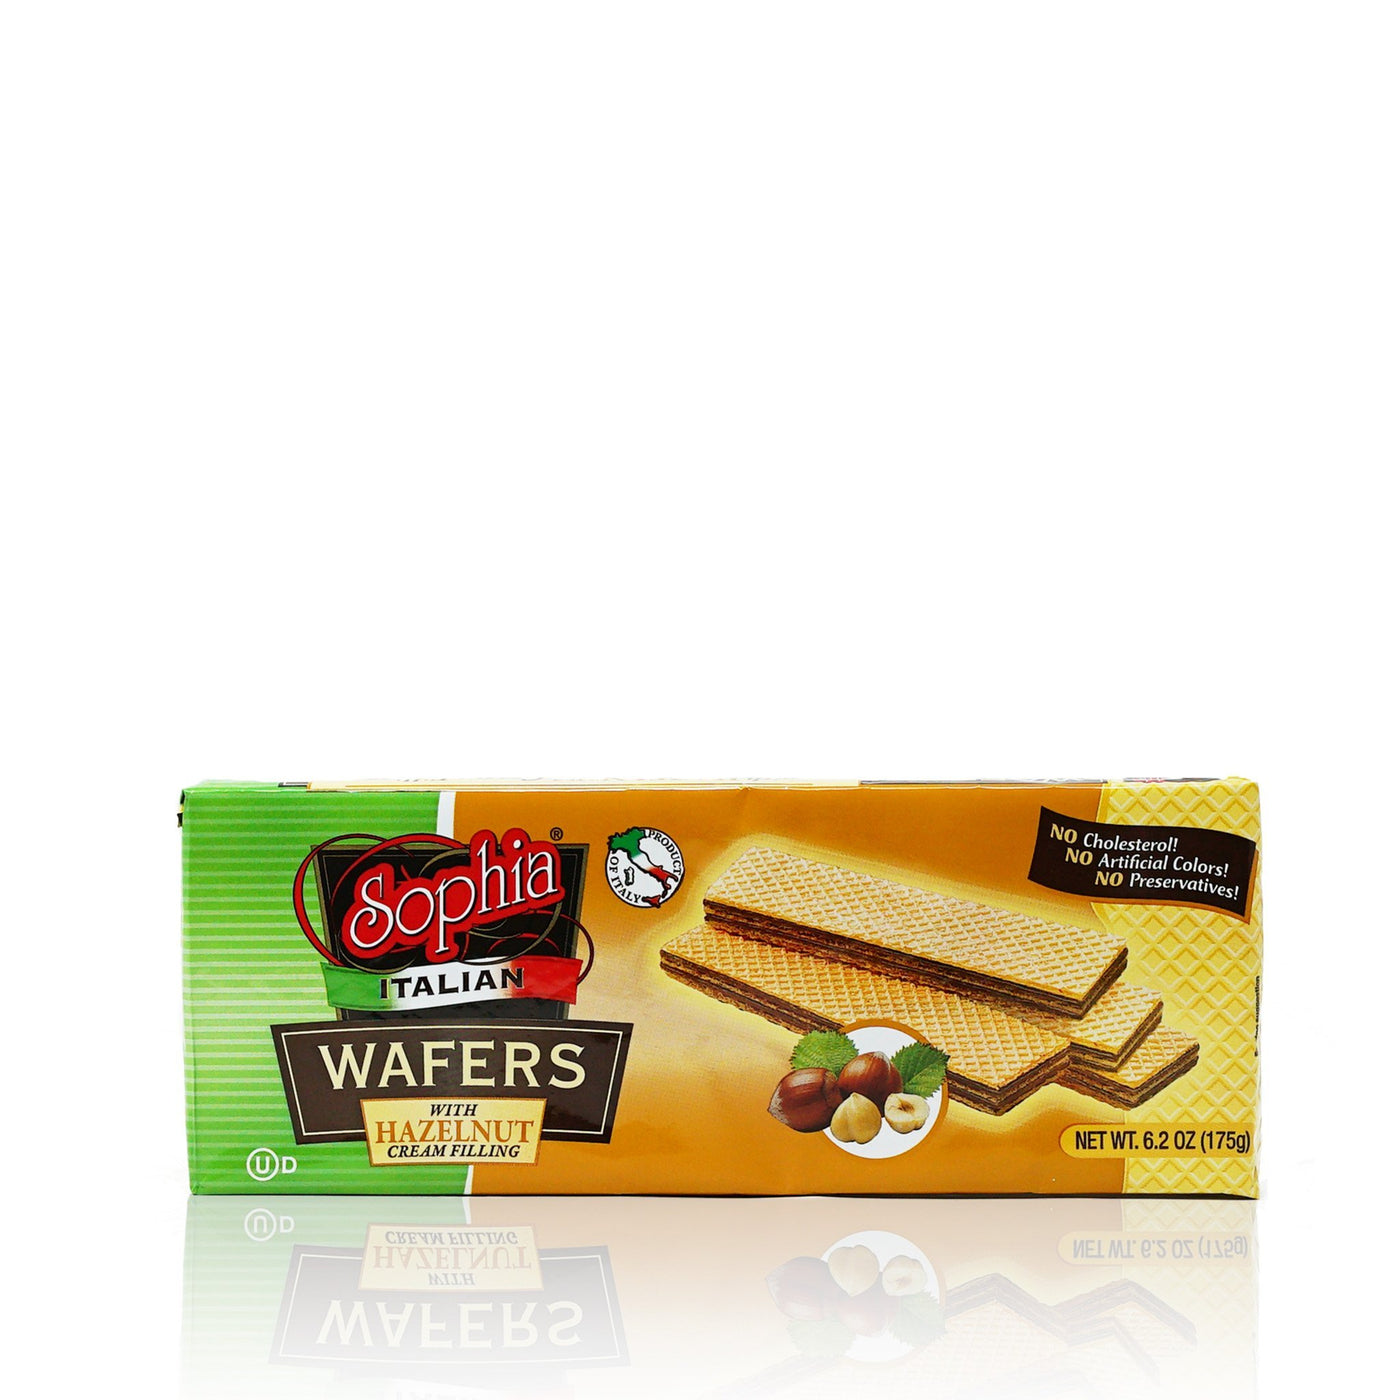 Sophia Wafers-Italian Wafer Fingers, Hazelnut 6.2oz-3 pack